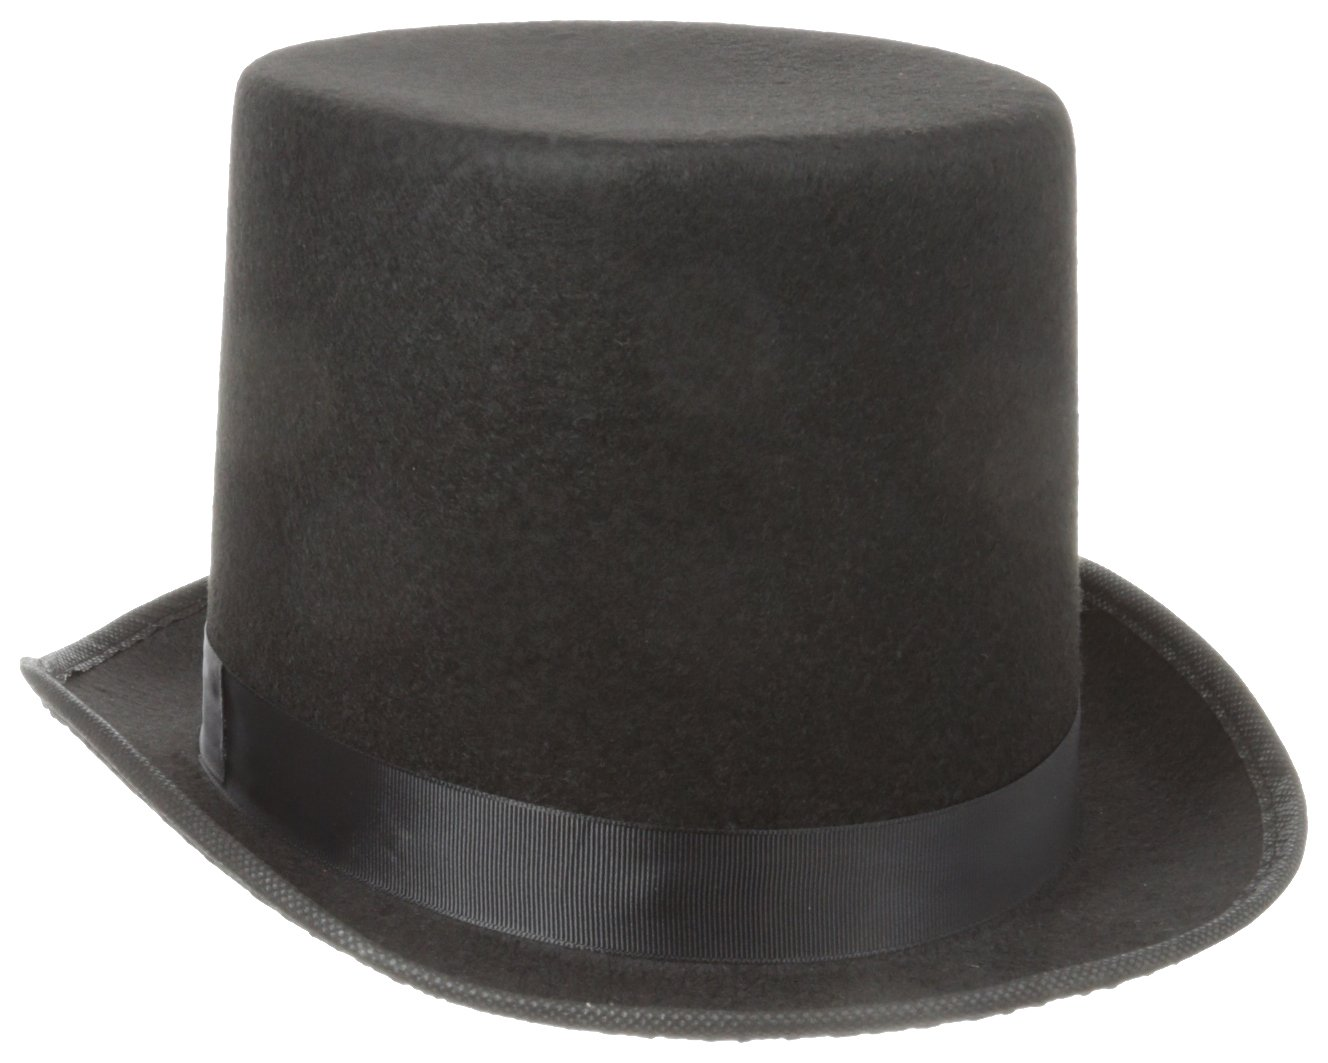 Jacobson Hat Company Men's Permalux Tall Top Hat (7 Inch Tall) Black Adult 23709 BKAO